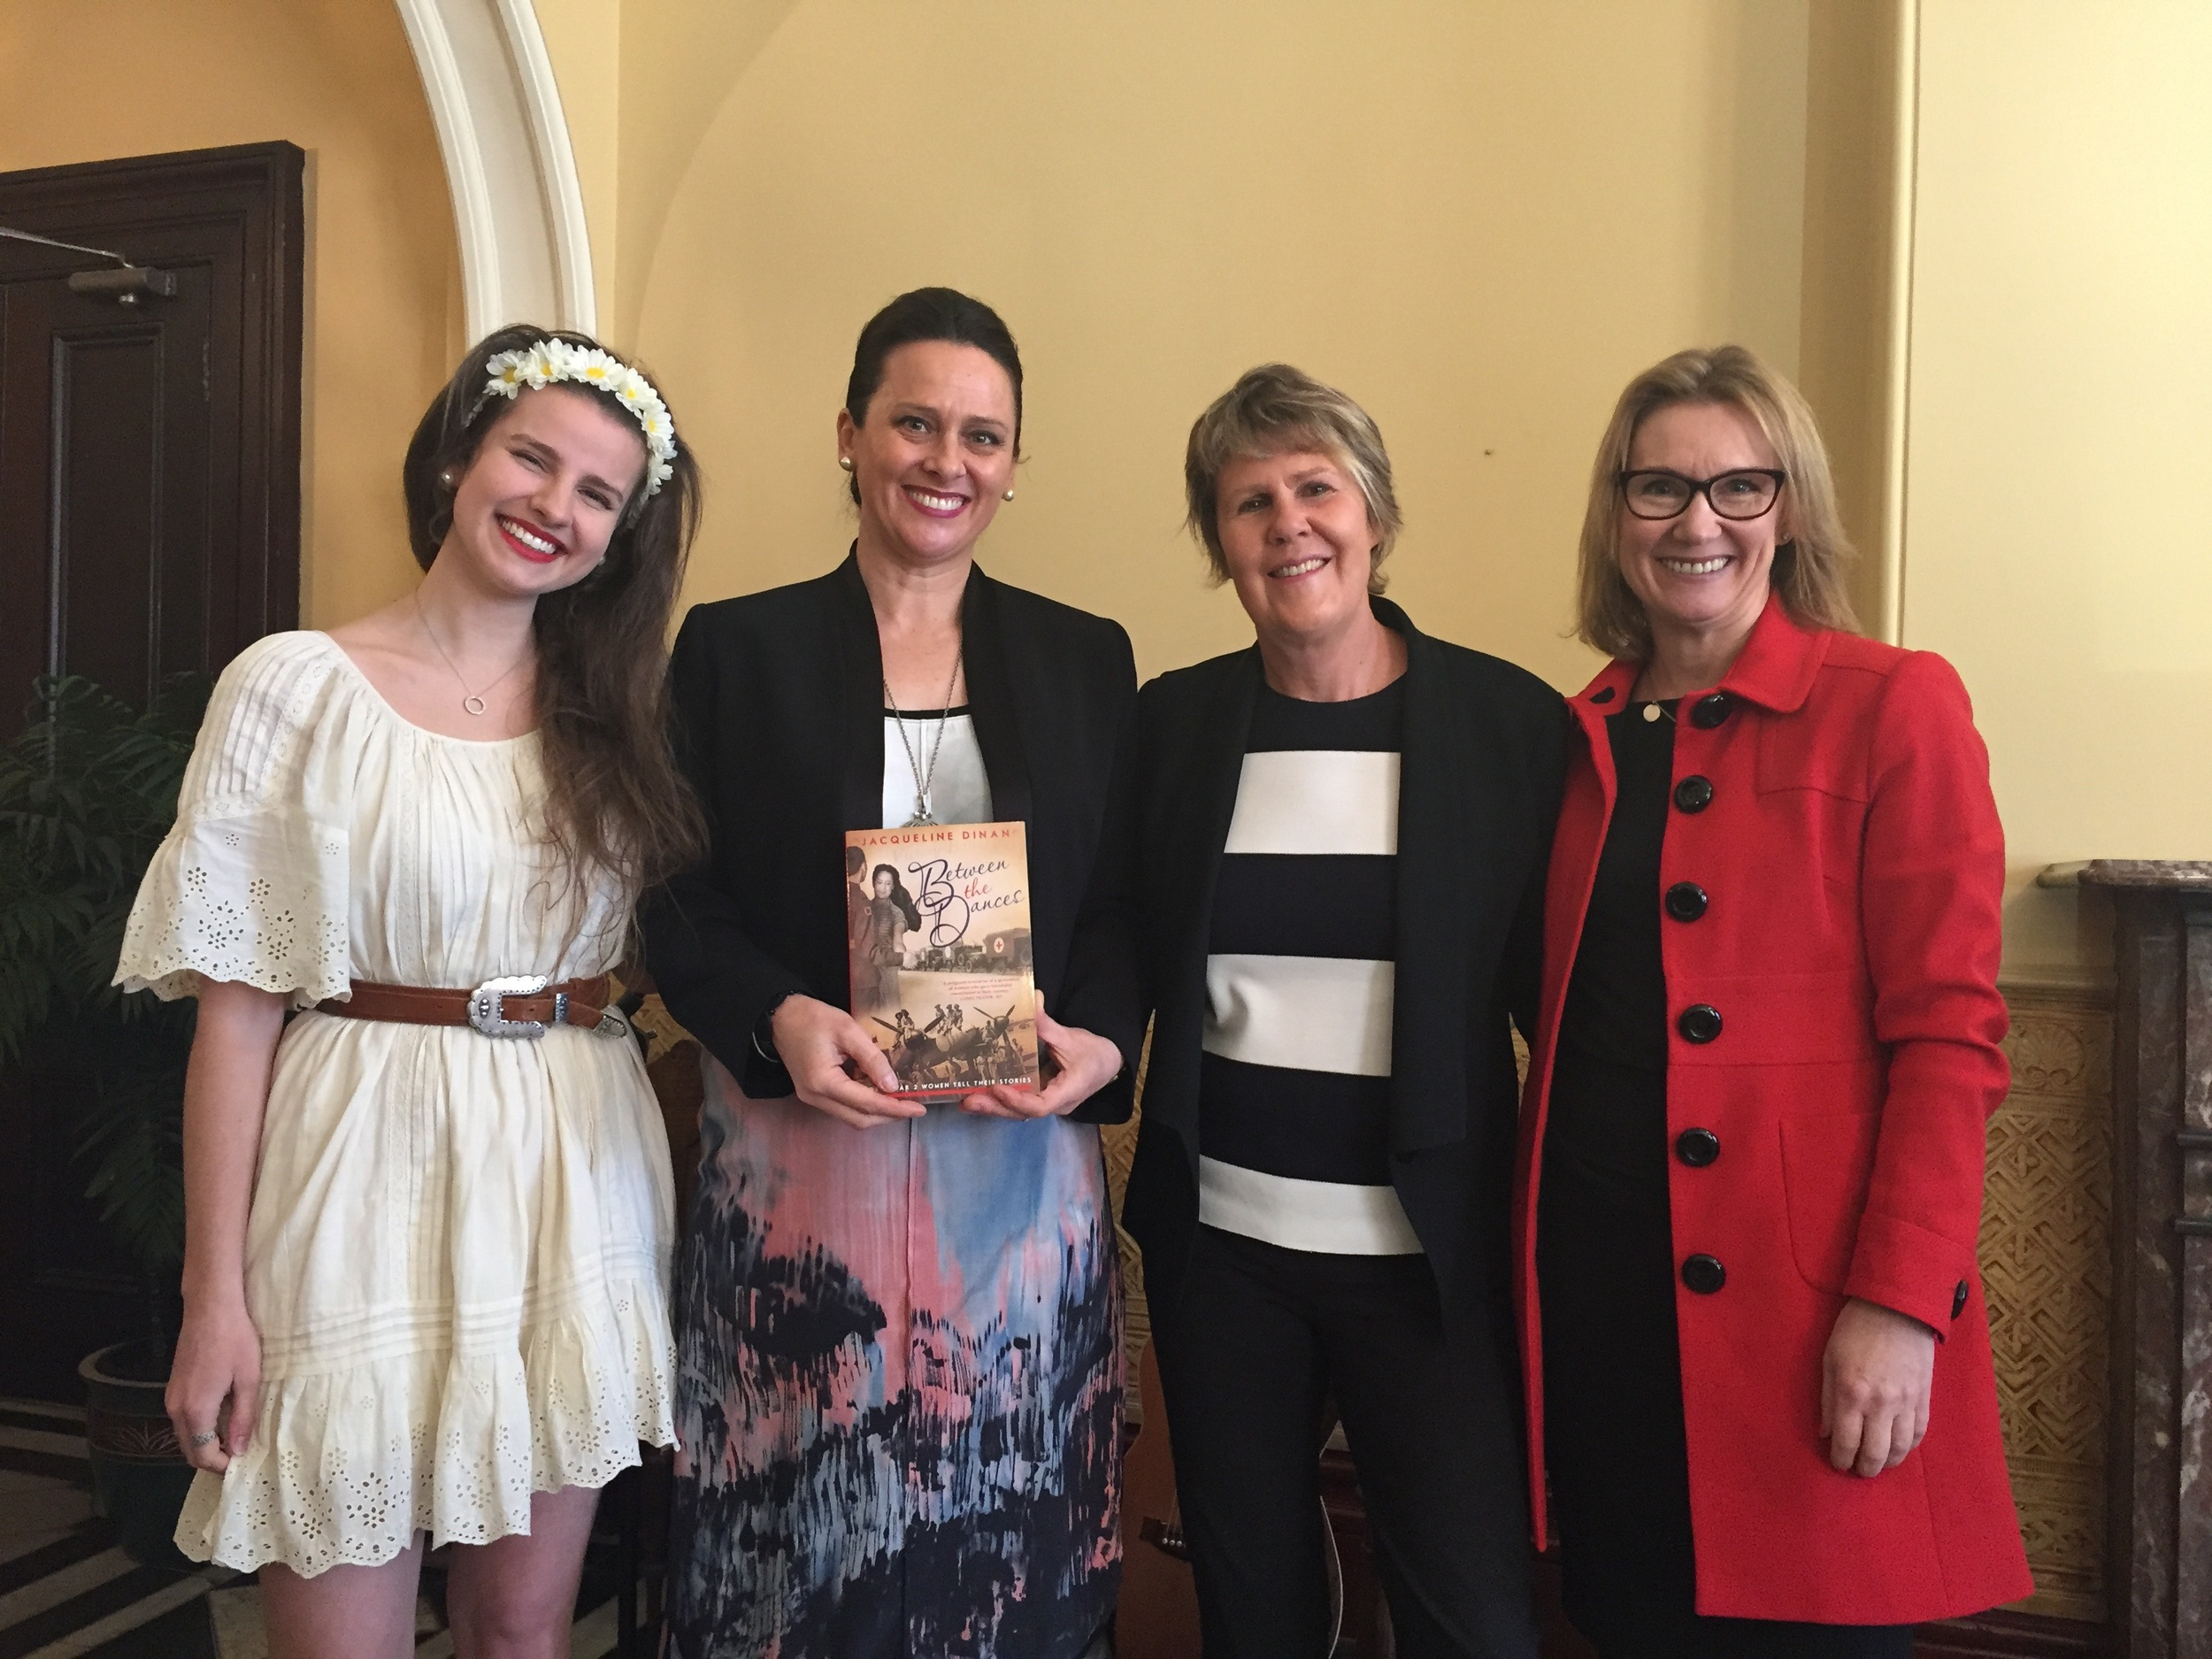 Imogen Clark, Fran Kelly, Jacqueline Dinan and Publisher Jane Curry